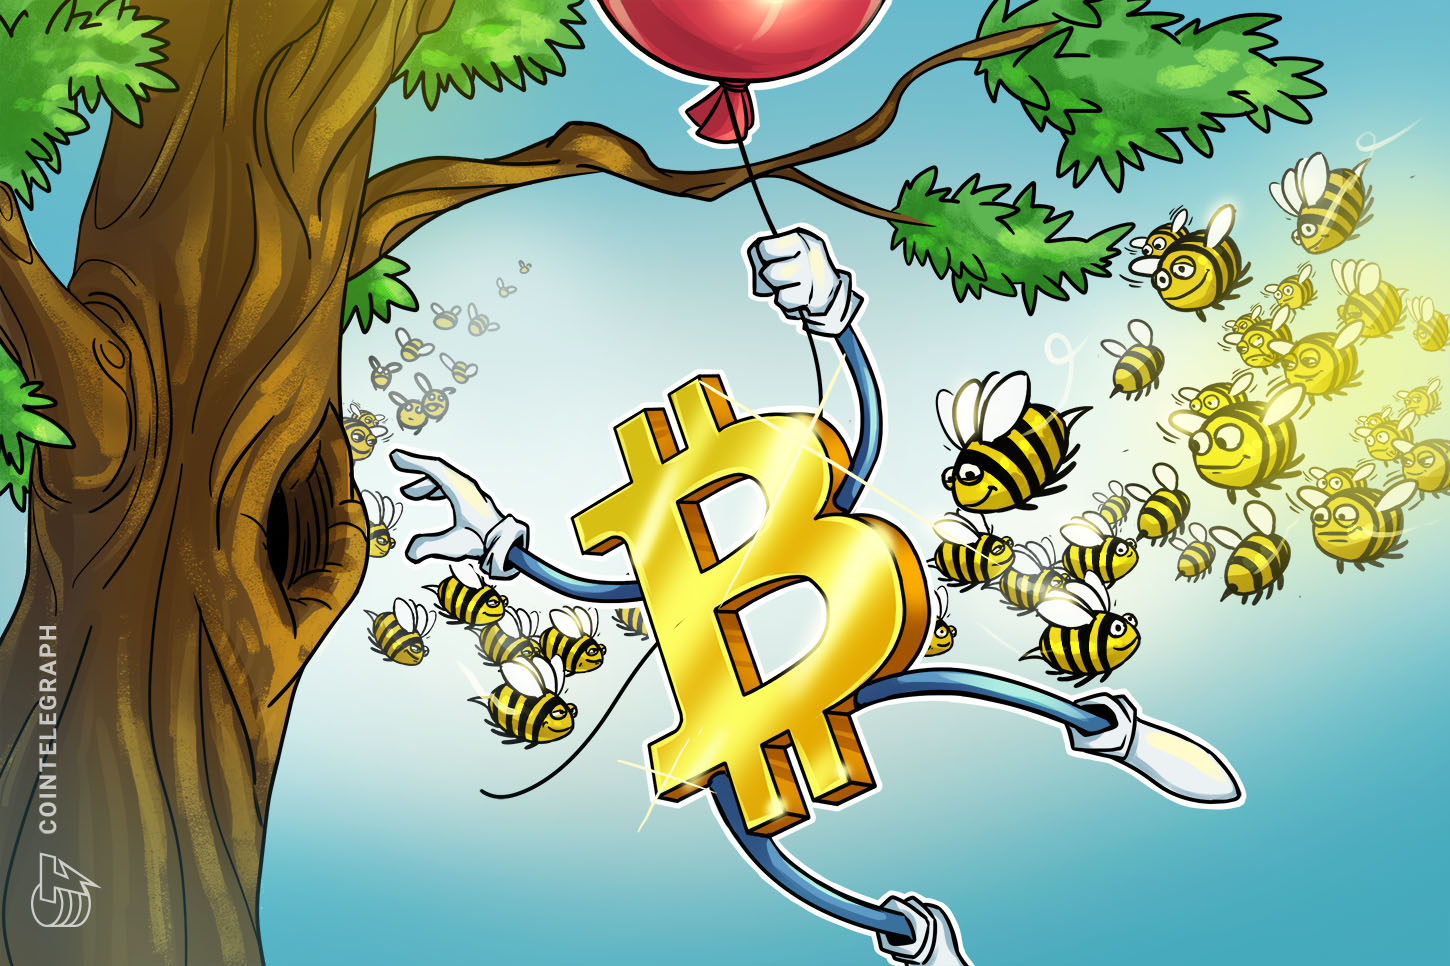 $1 Billion Liquidated as Bitcoin Worth Crashes by $1.4K in Minutes